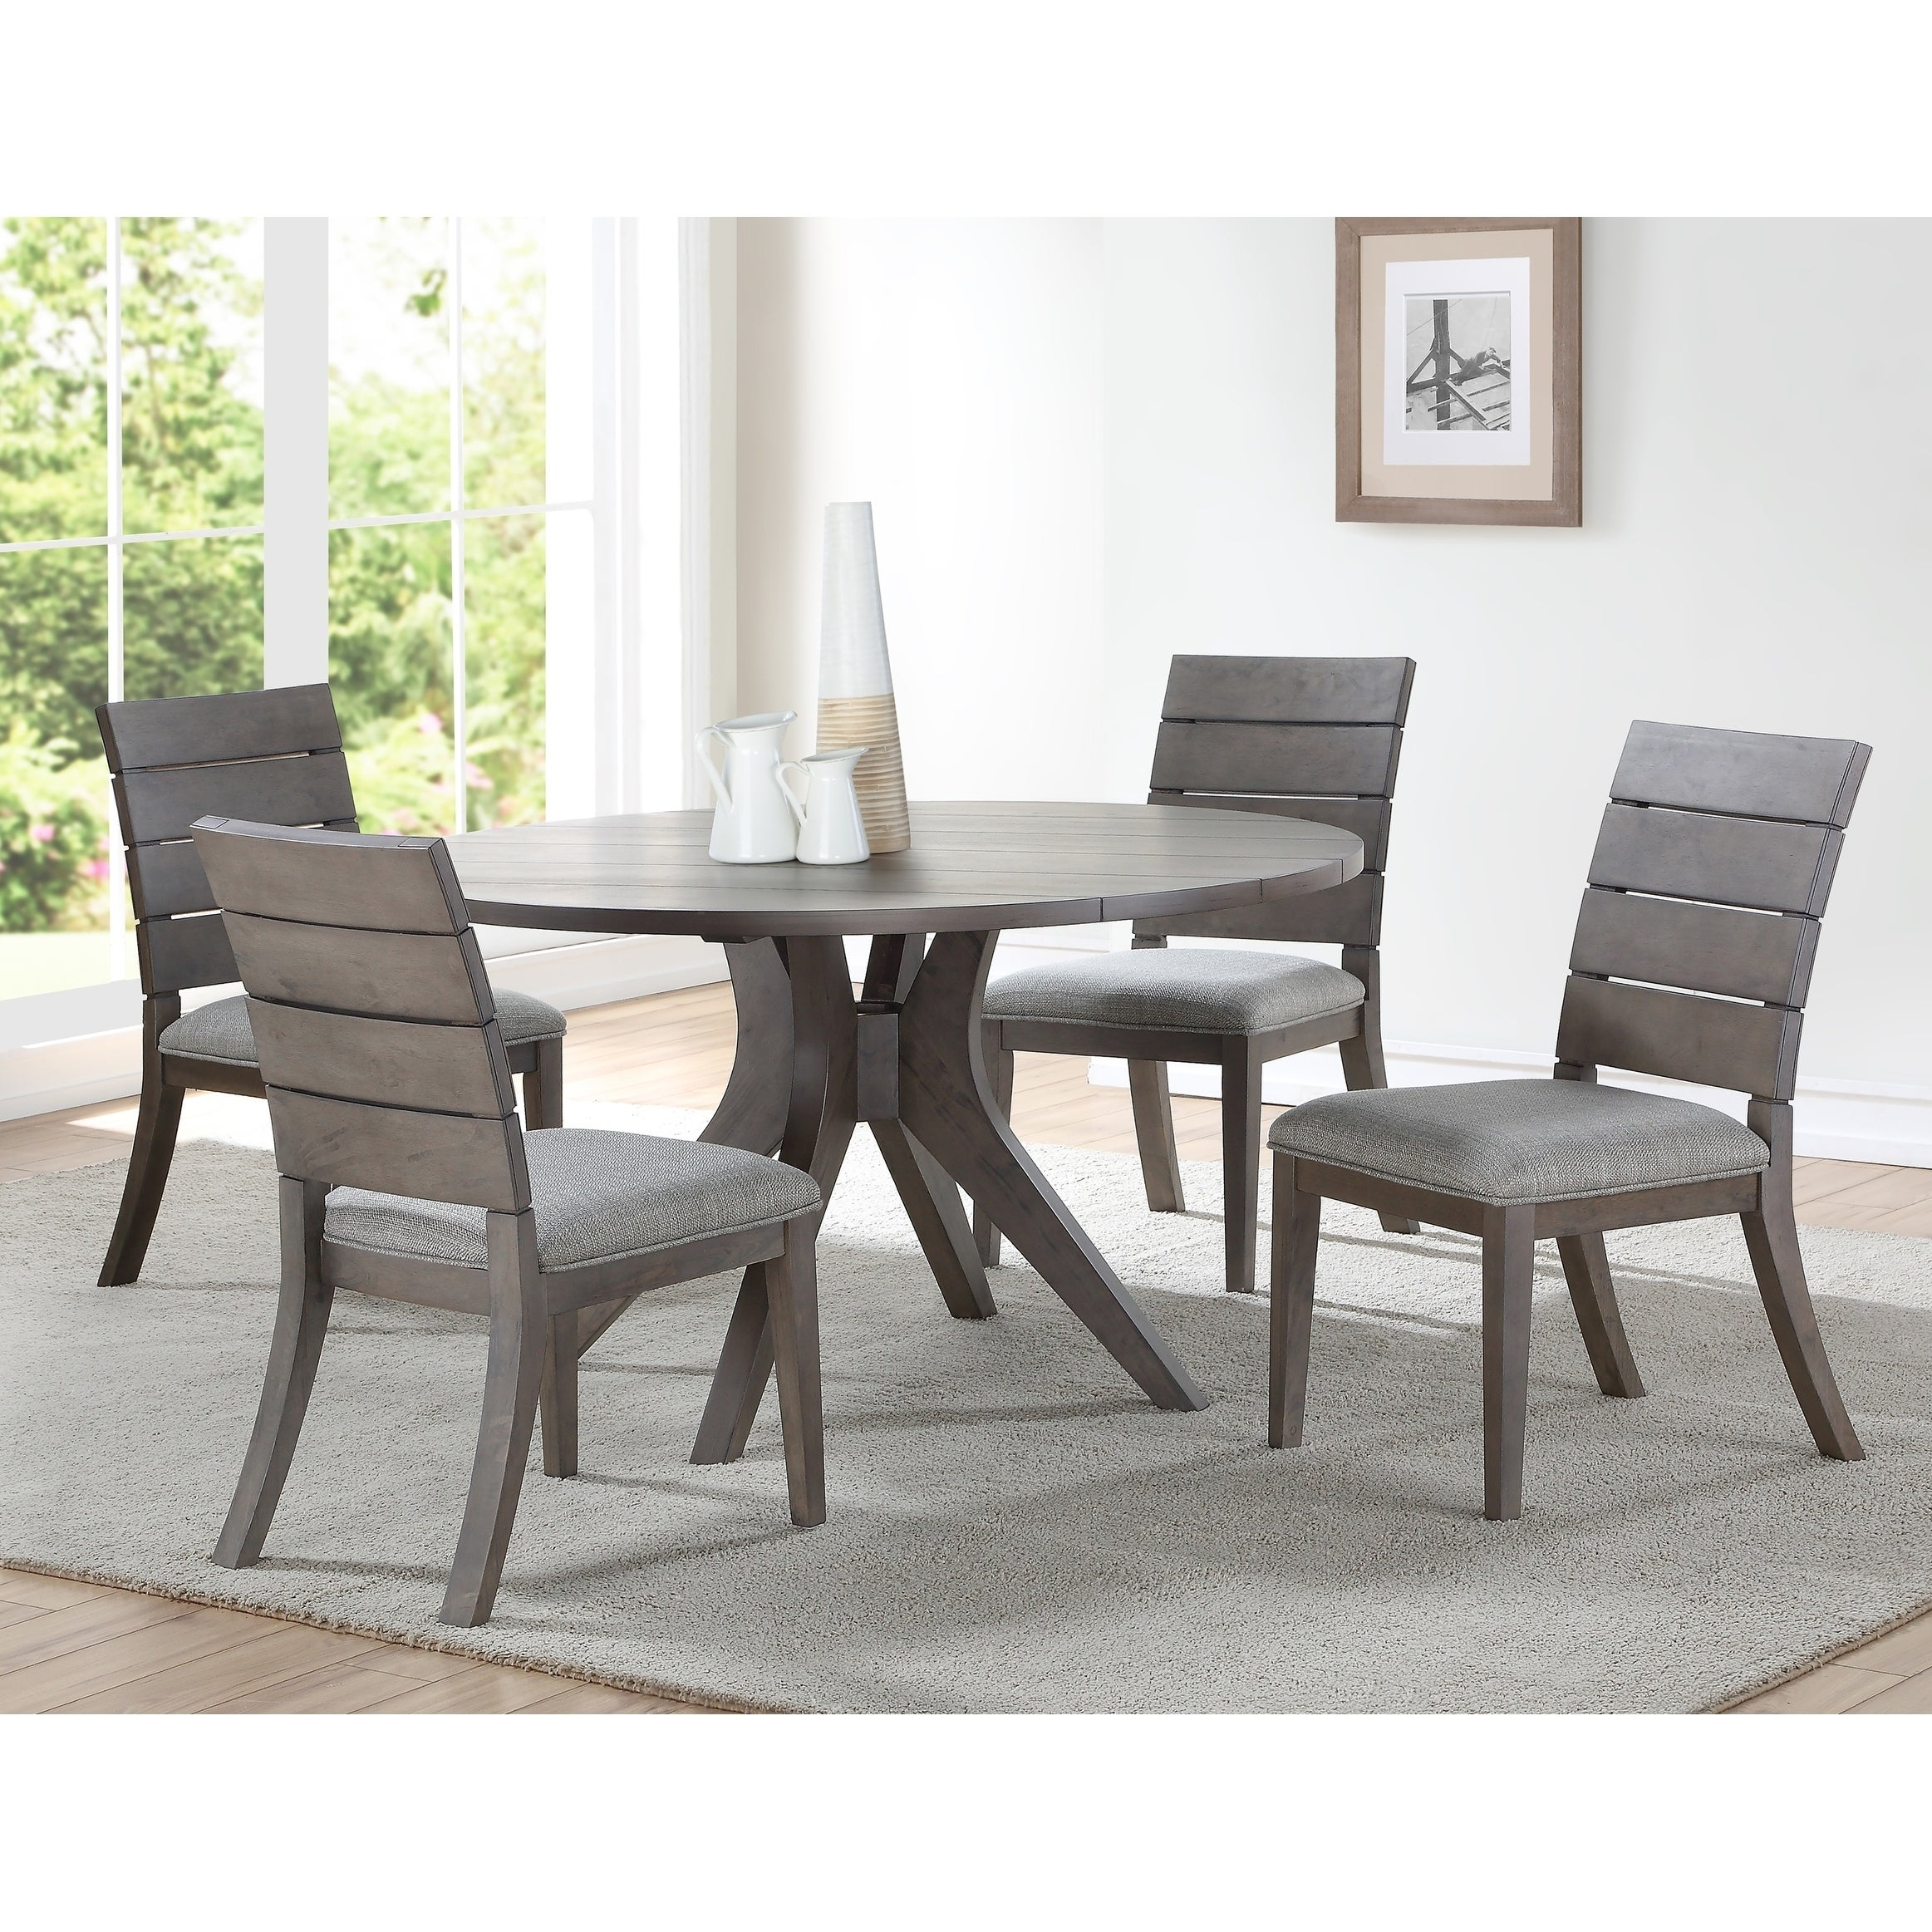 Picture of: The Gray Barn Abernathy Modern Round Dining Set Overstock 27031465